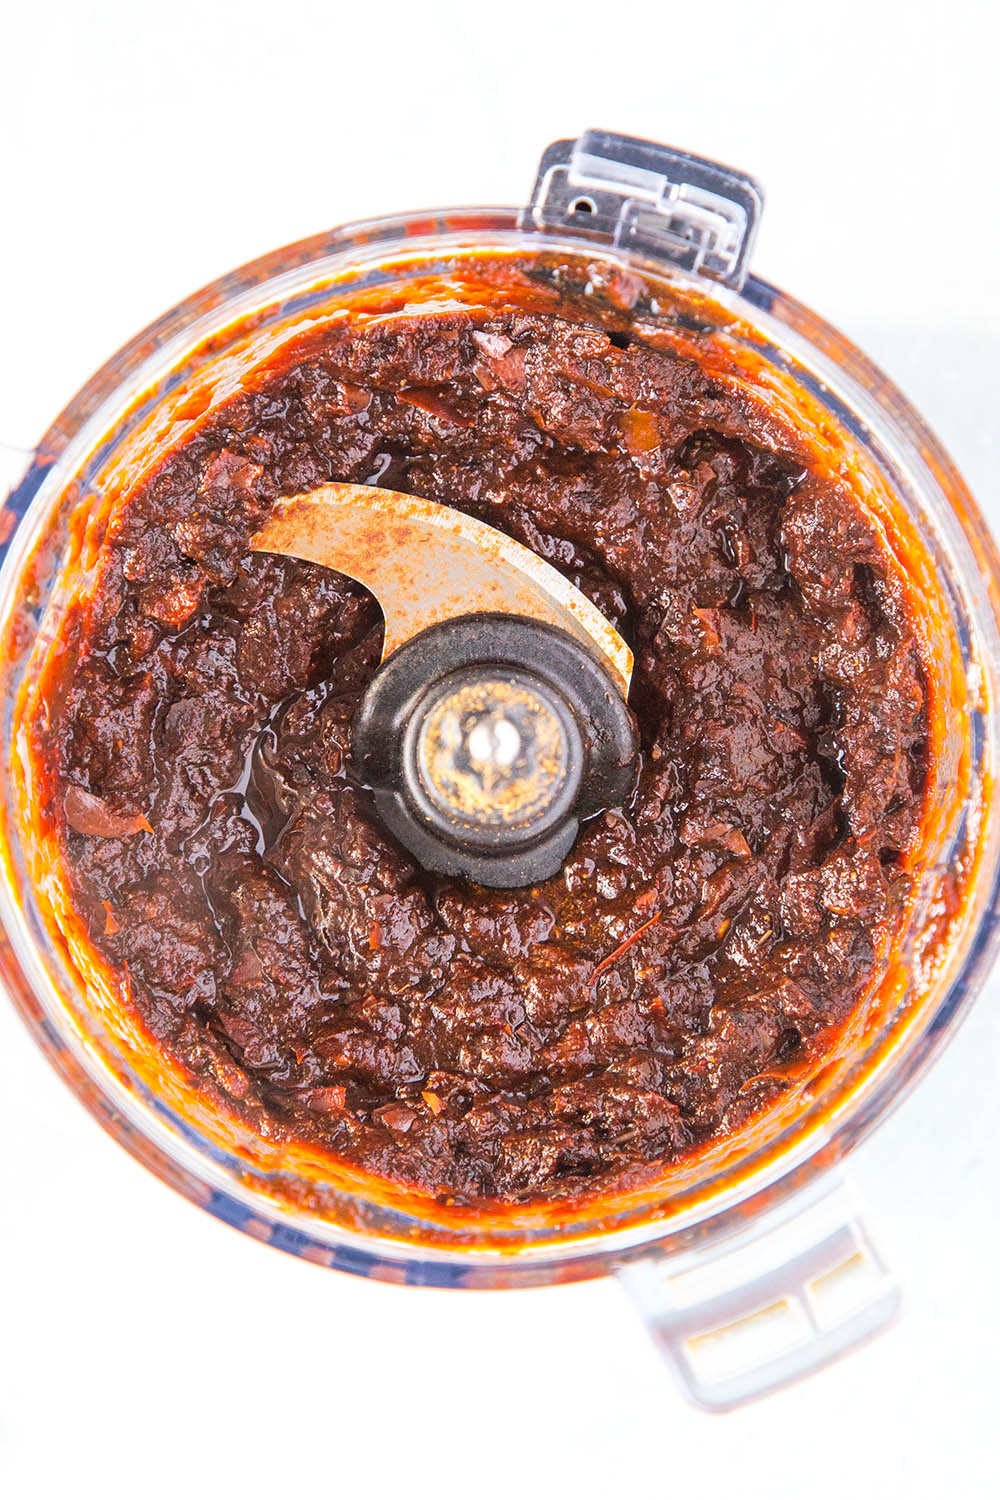 Making the chili paste for our Texas chili